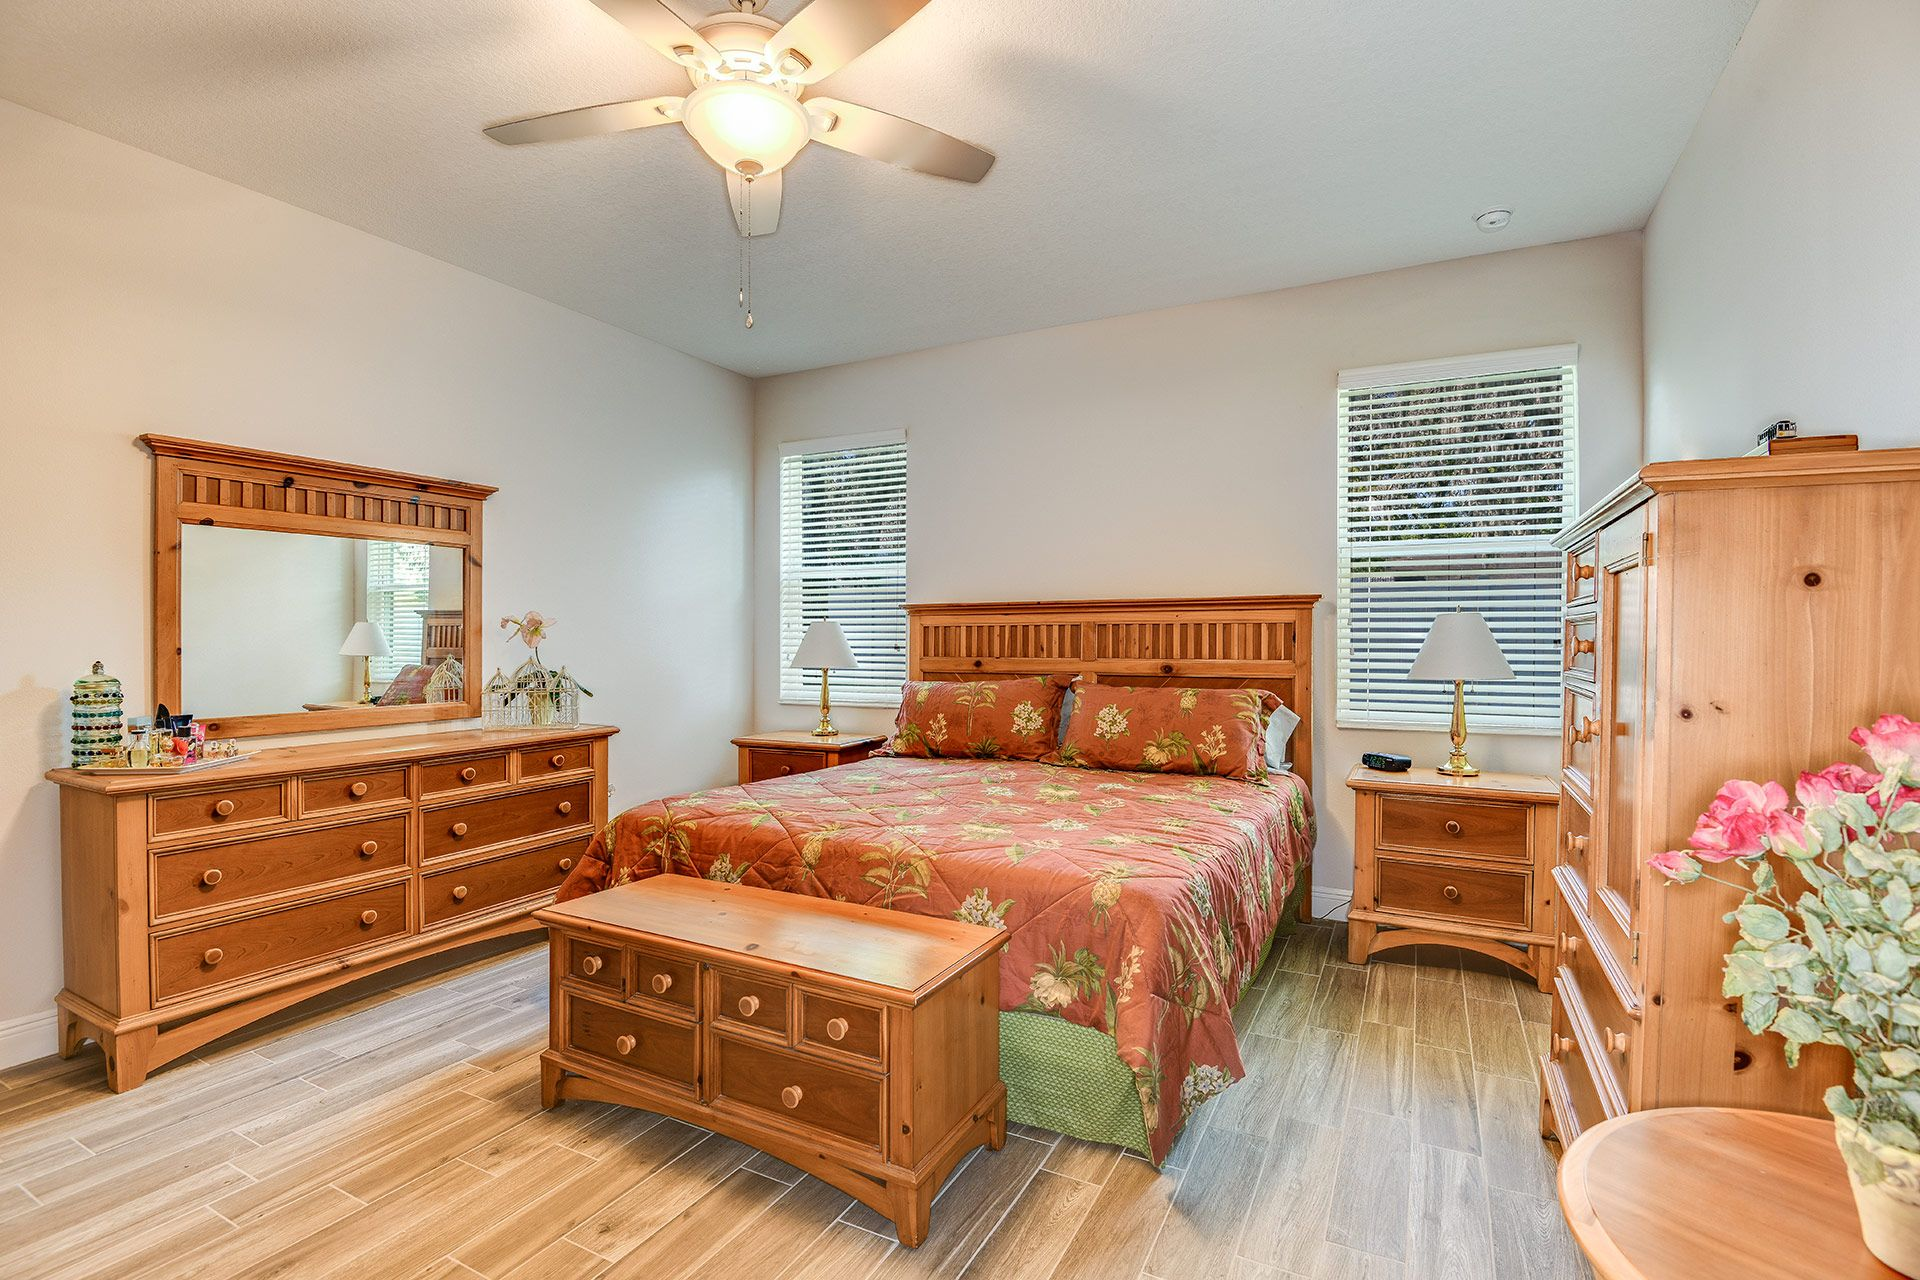 Bedroom featured in the Vienna Del Lago By Mobley Homes in Tampa-St. Petersburg, FL